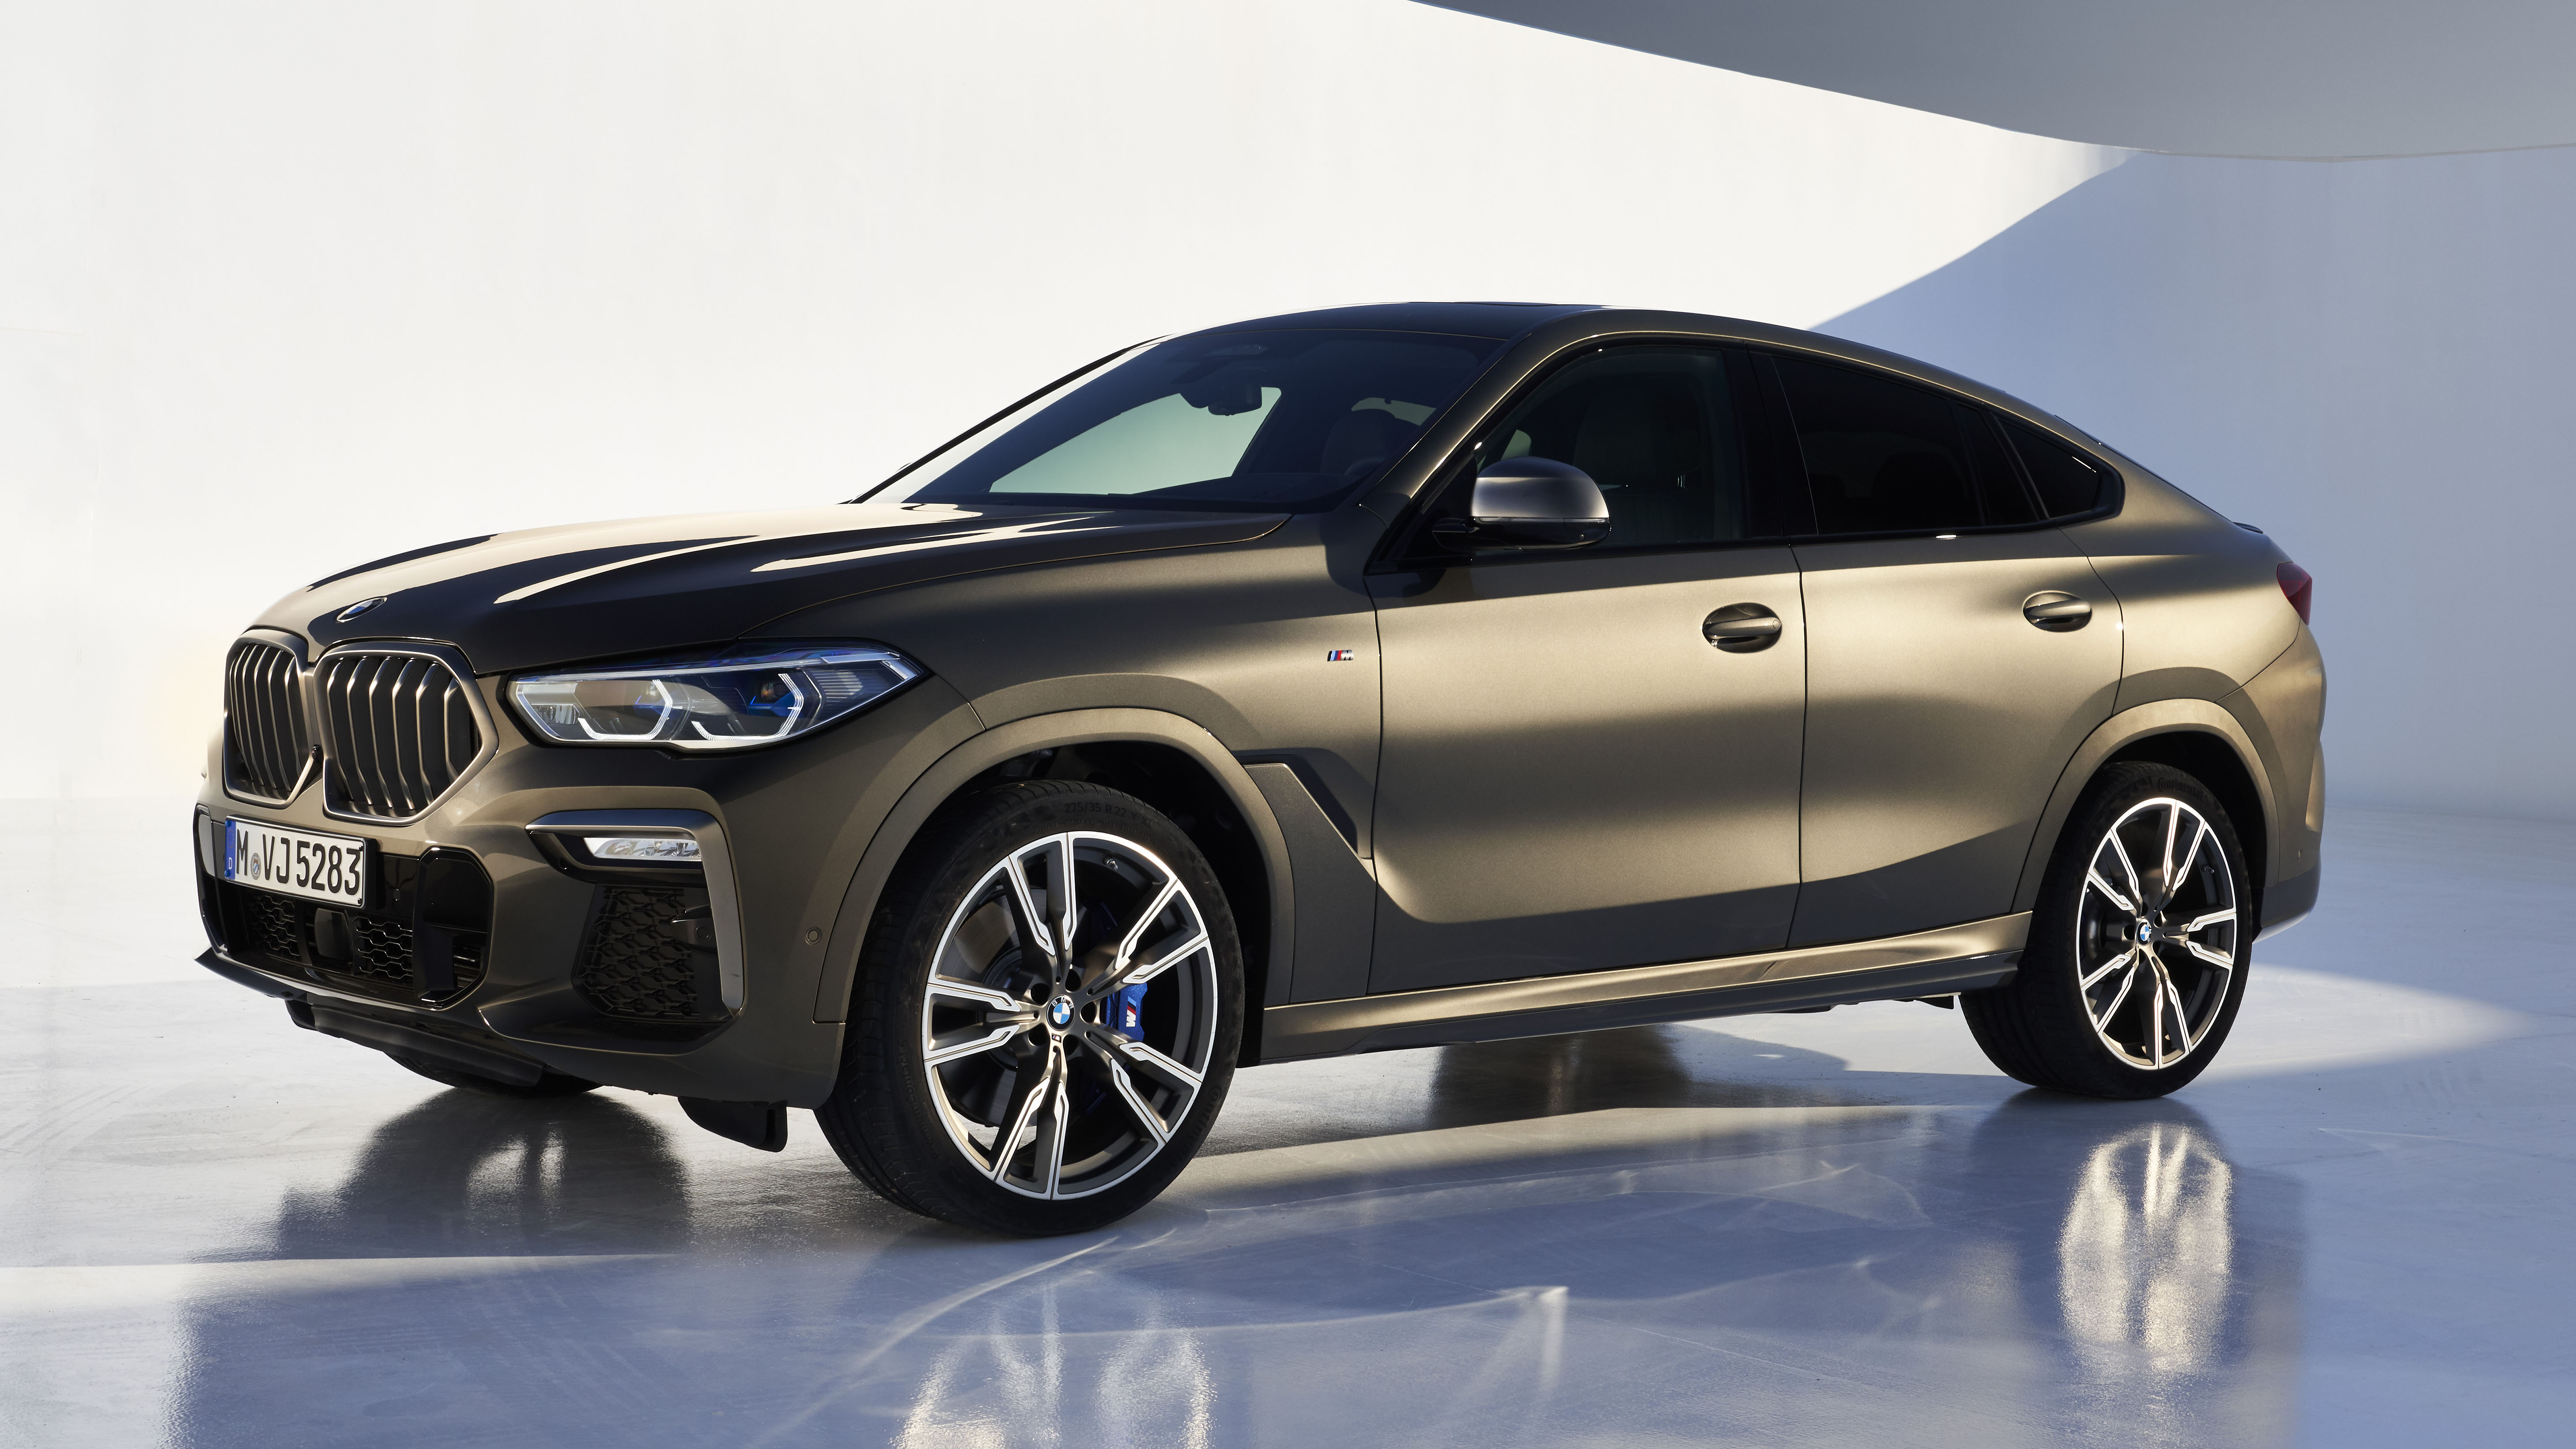 Bmw Certified Pre Owned >> 2020 BMW X6 revealed, more distinct from X5 sibling | Autoblog